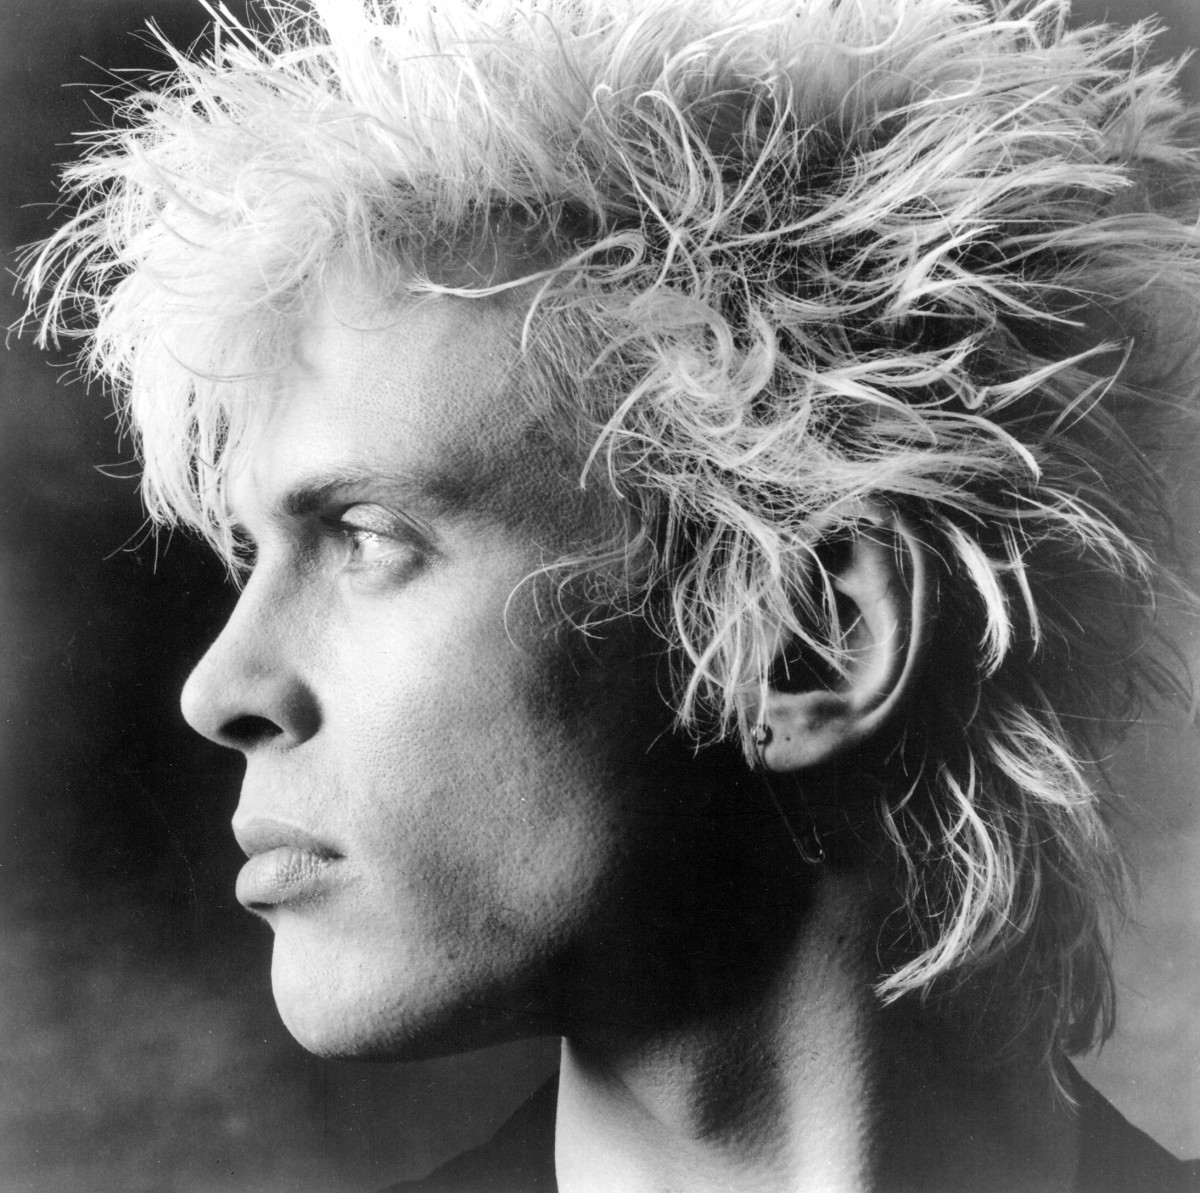 Billy Idol profile in black and white